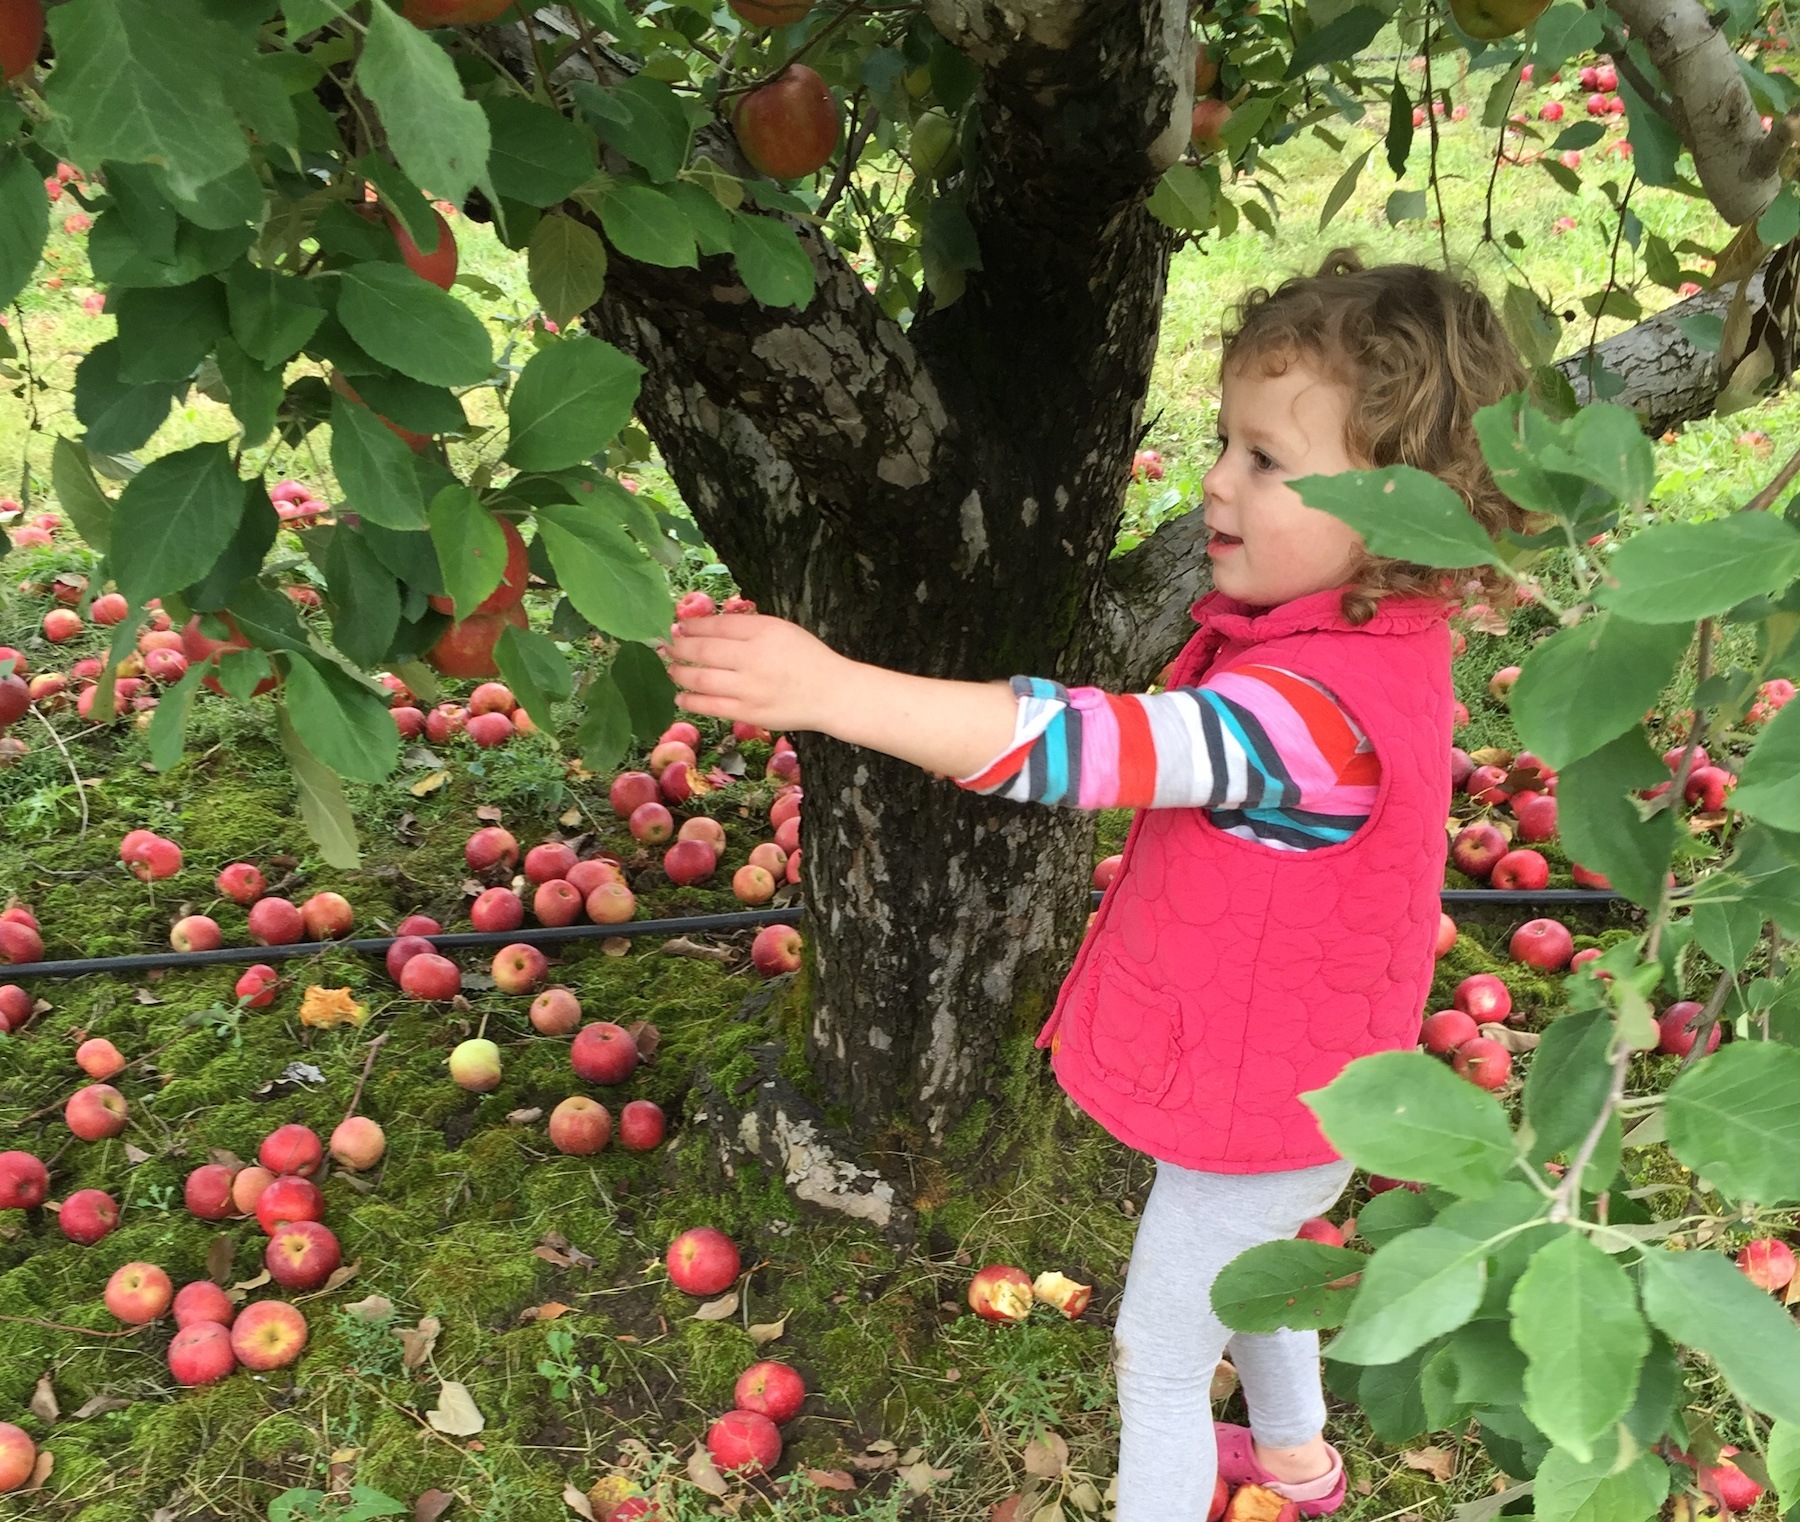 21 Things to Do in the Fall on a Budget in the Champaign-Urbana Area